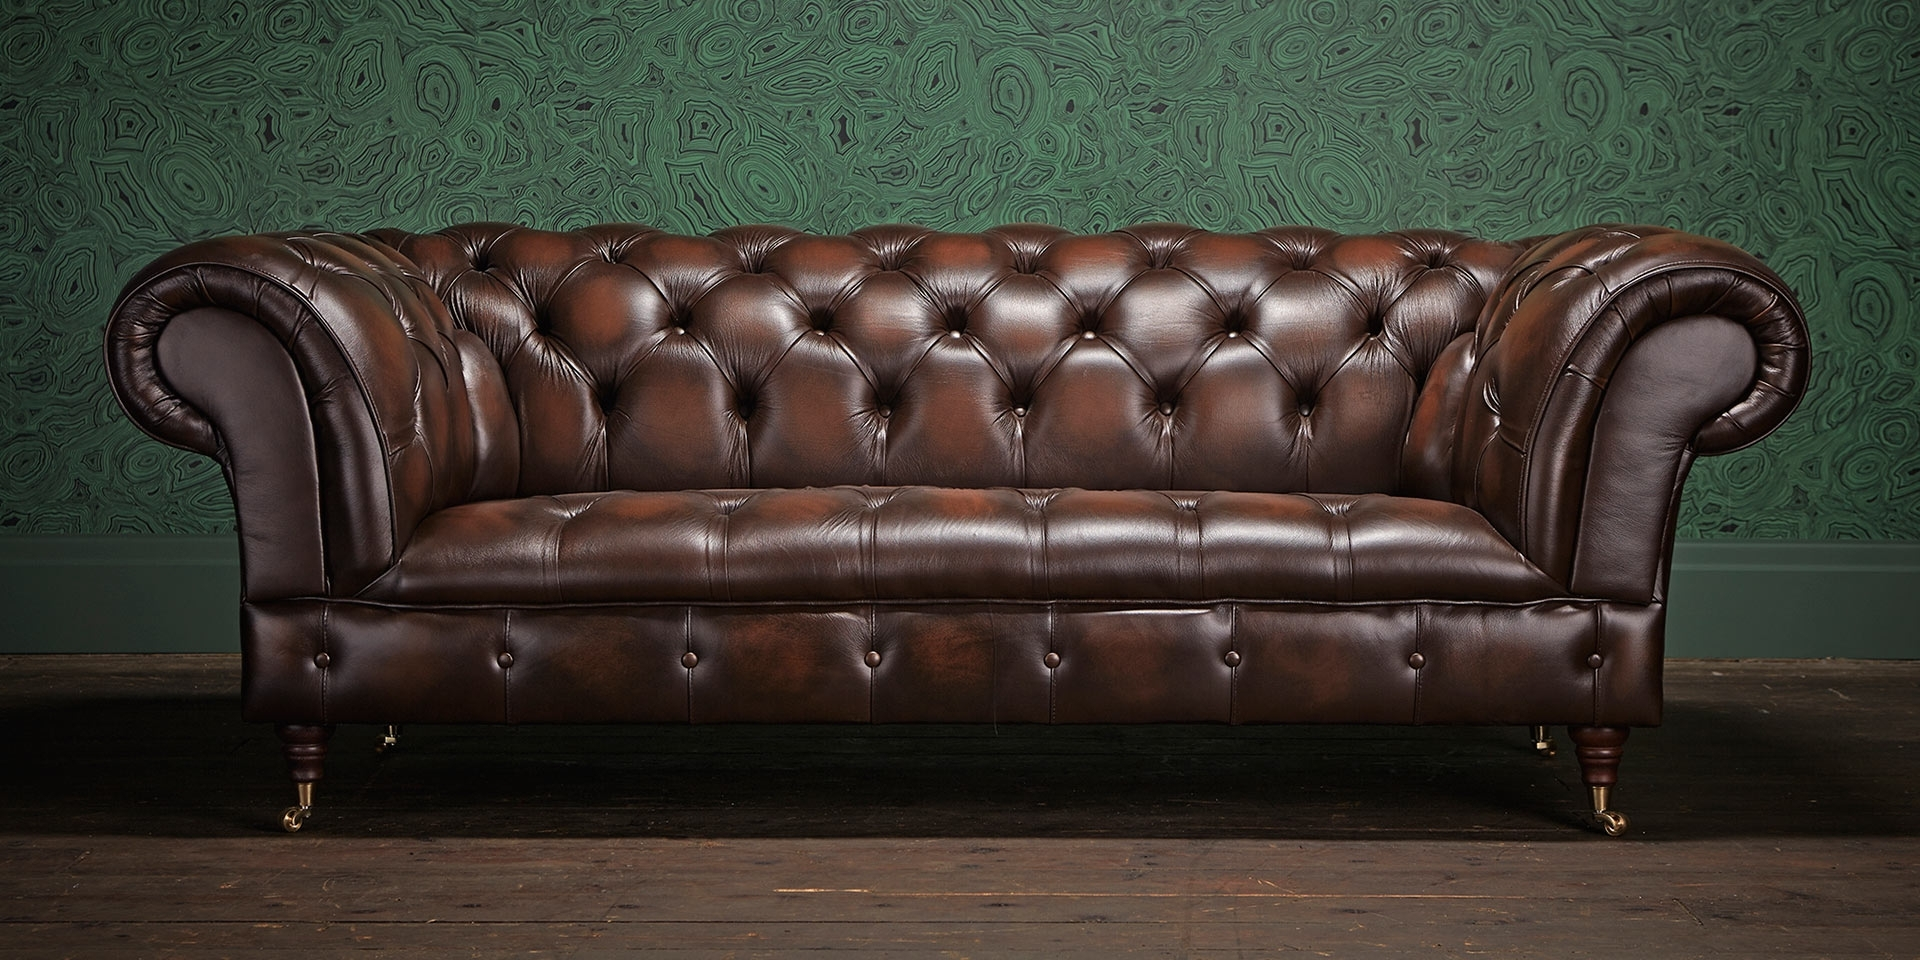 Chesterfield Sofa, Chesterfield And Chesterfield Furniture Within 2017 Leather Chesterfield Sofas (View 3 of 15)